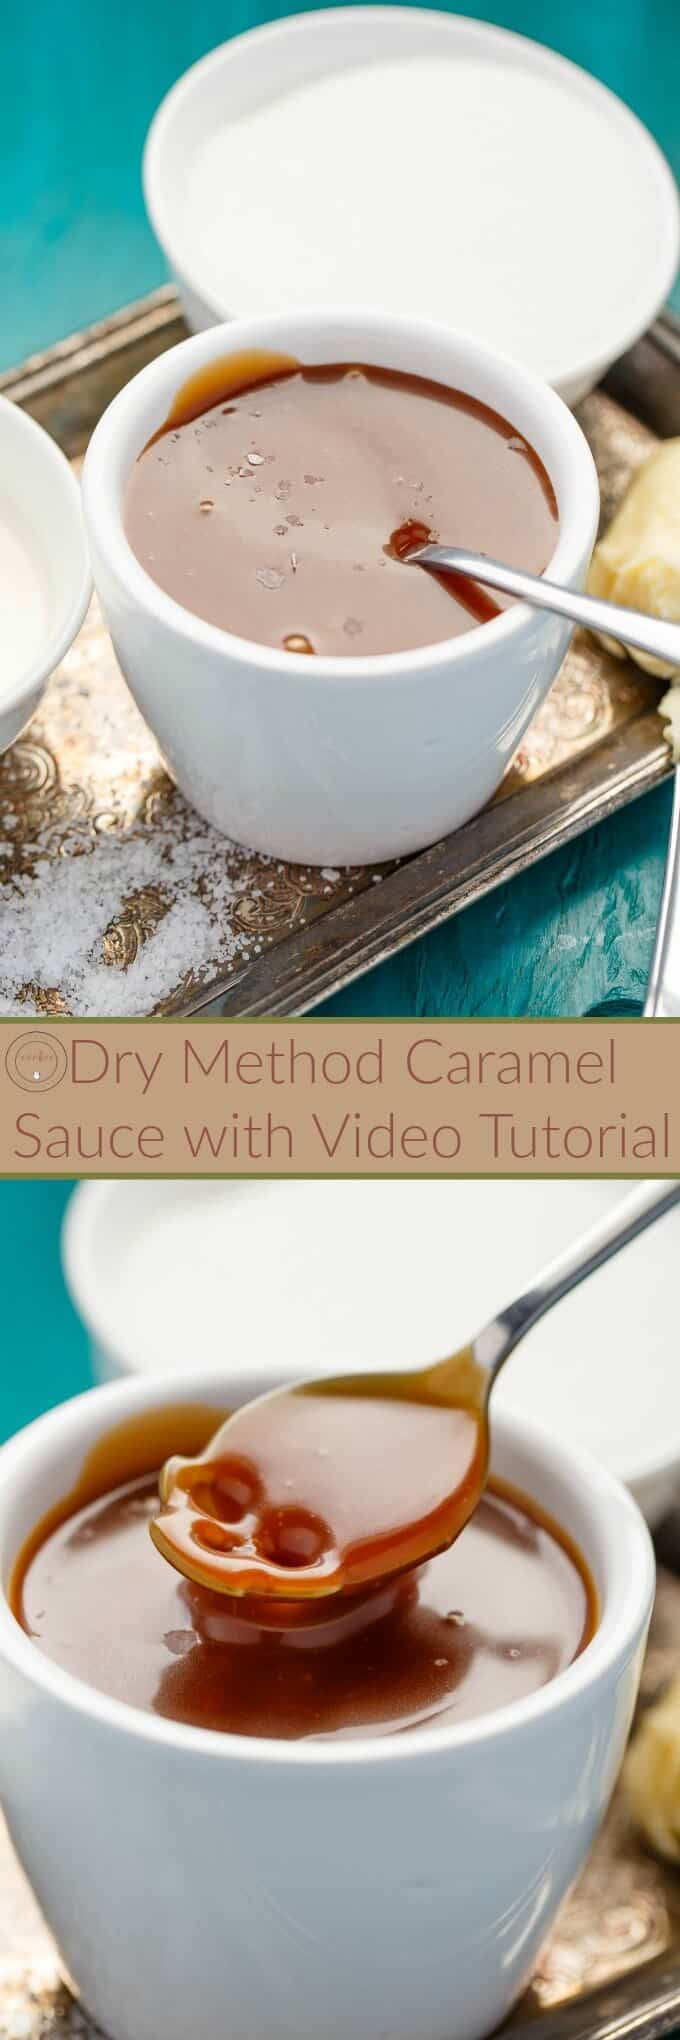 Dry Method Caramel Sauce: How-To Tutorial